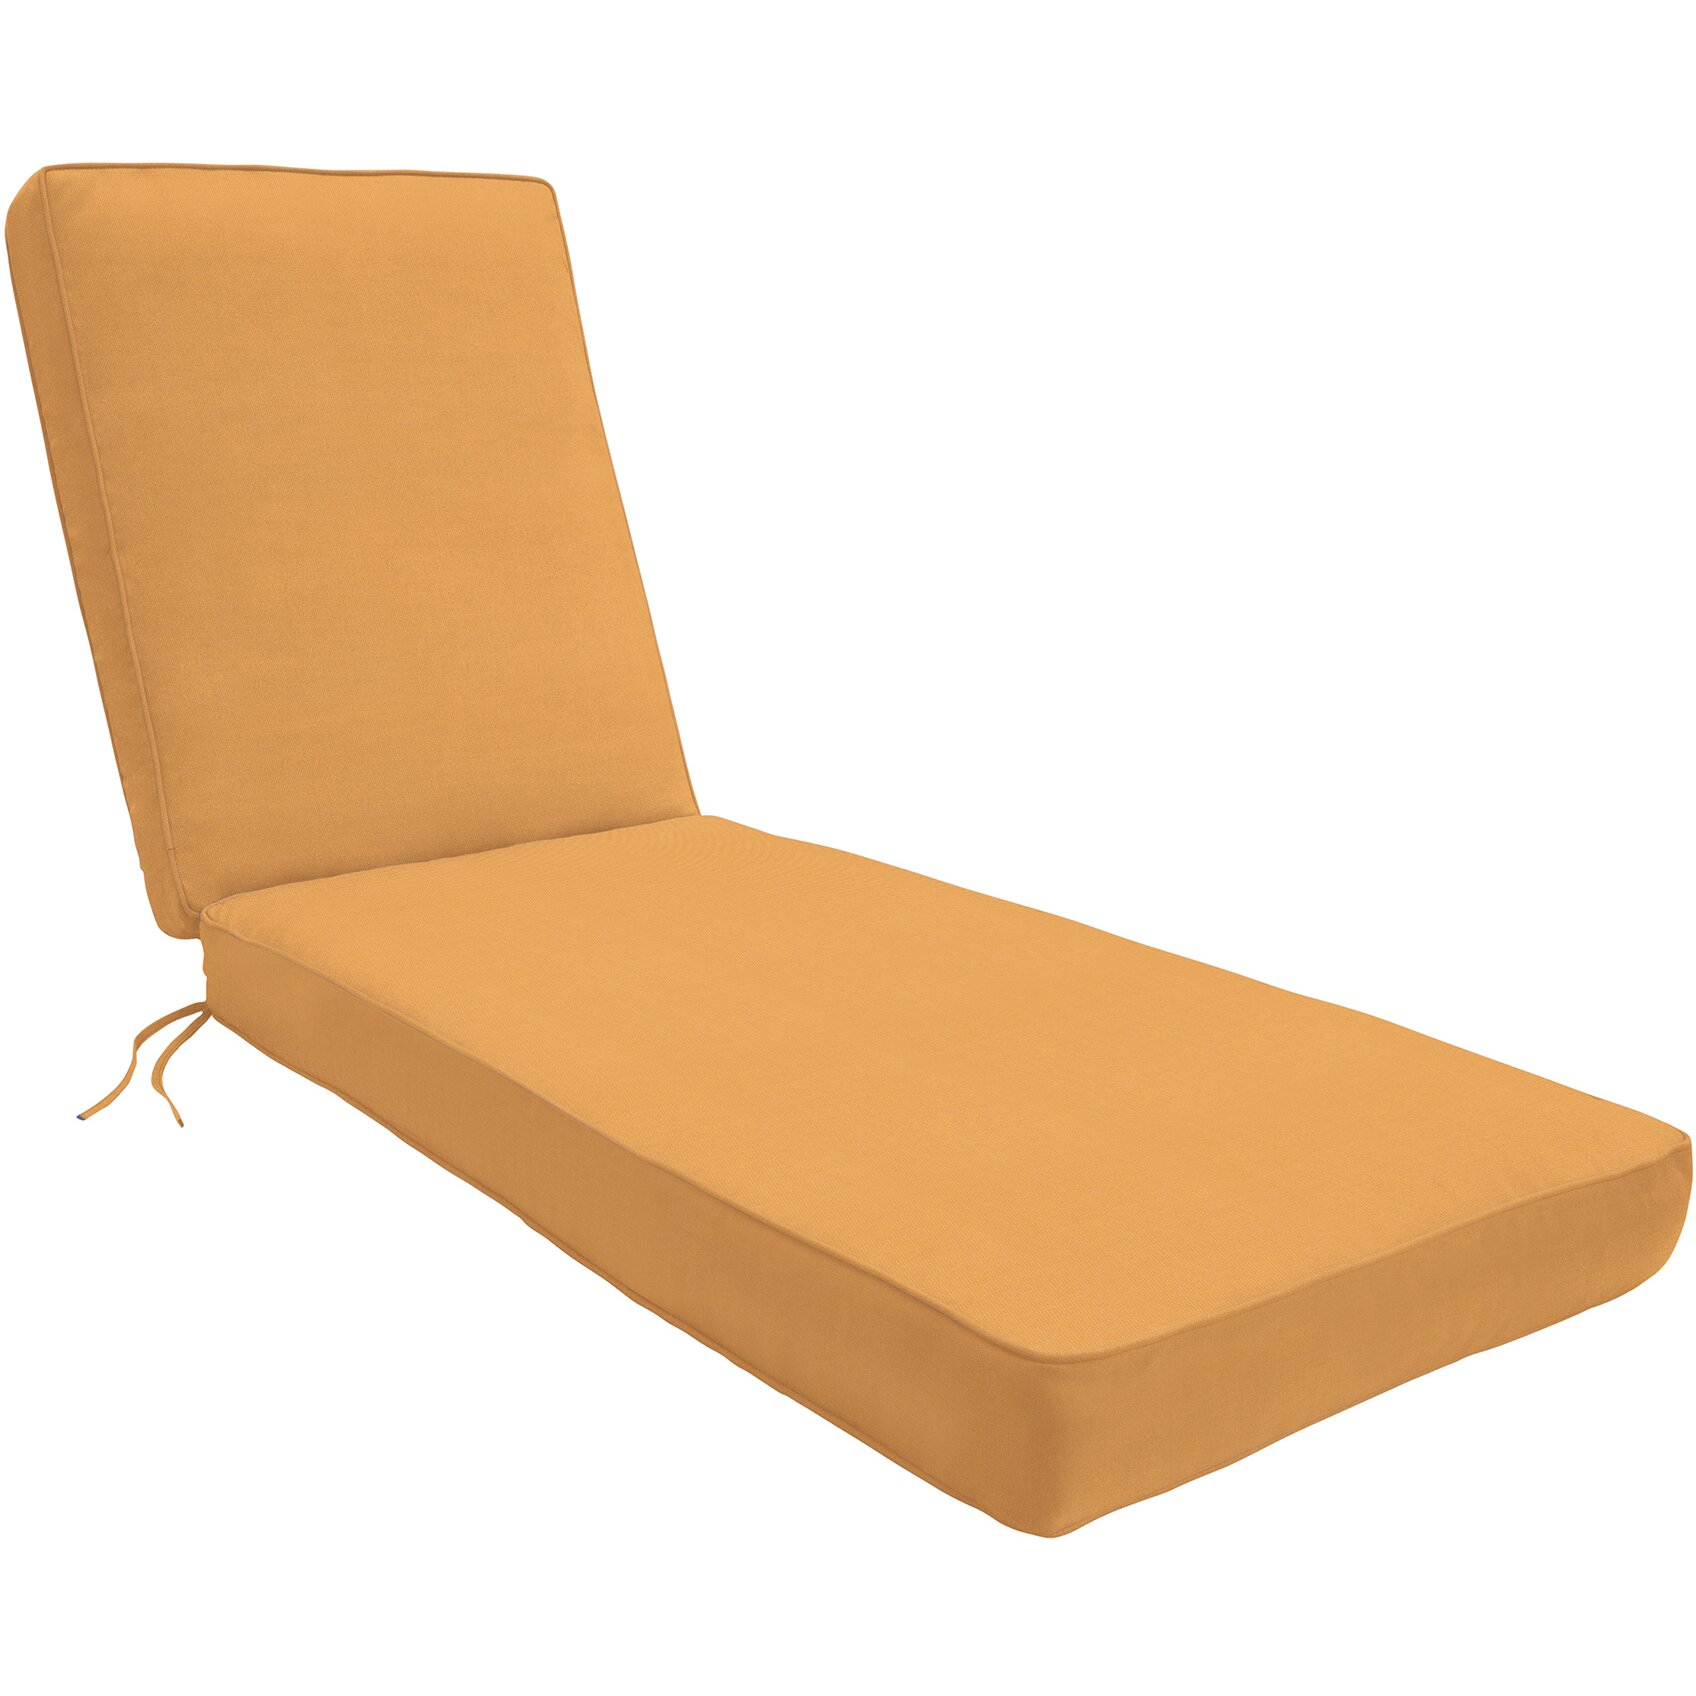 Wayfair custom outdoor cushions outdoor sunbrella chaise for Chaise cushion sale